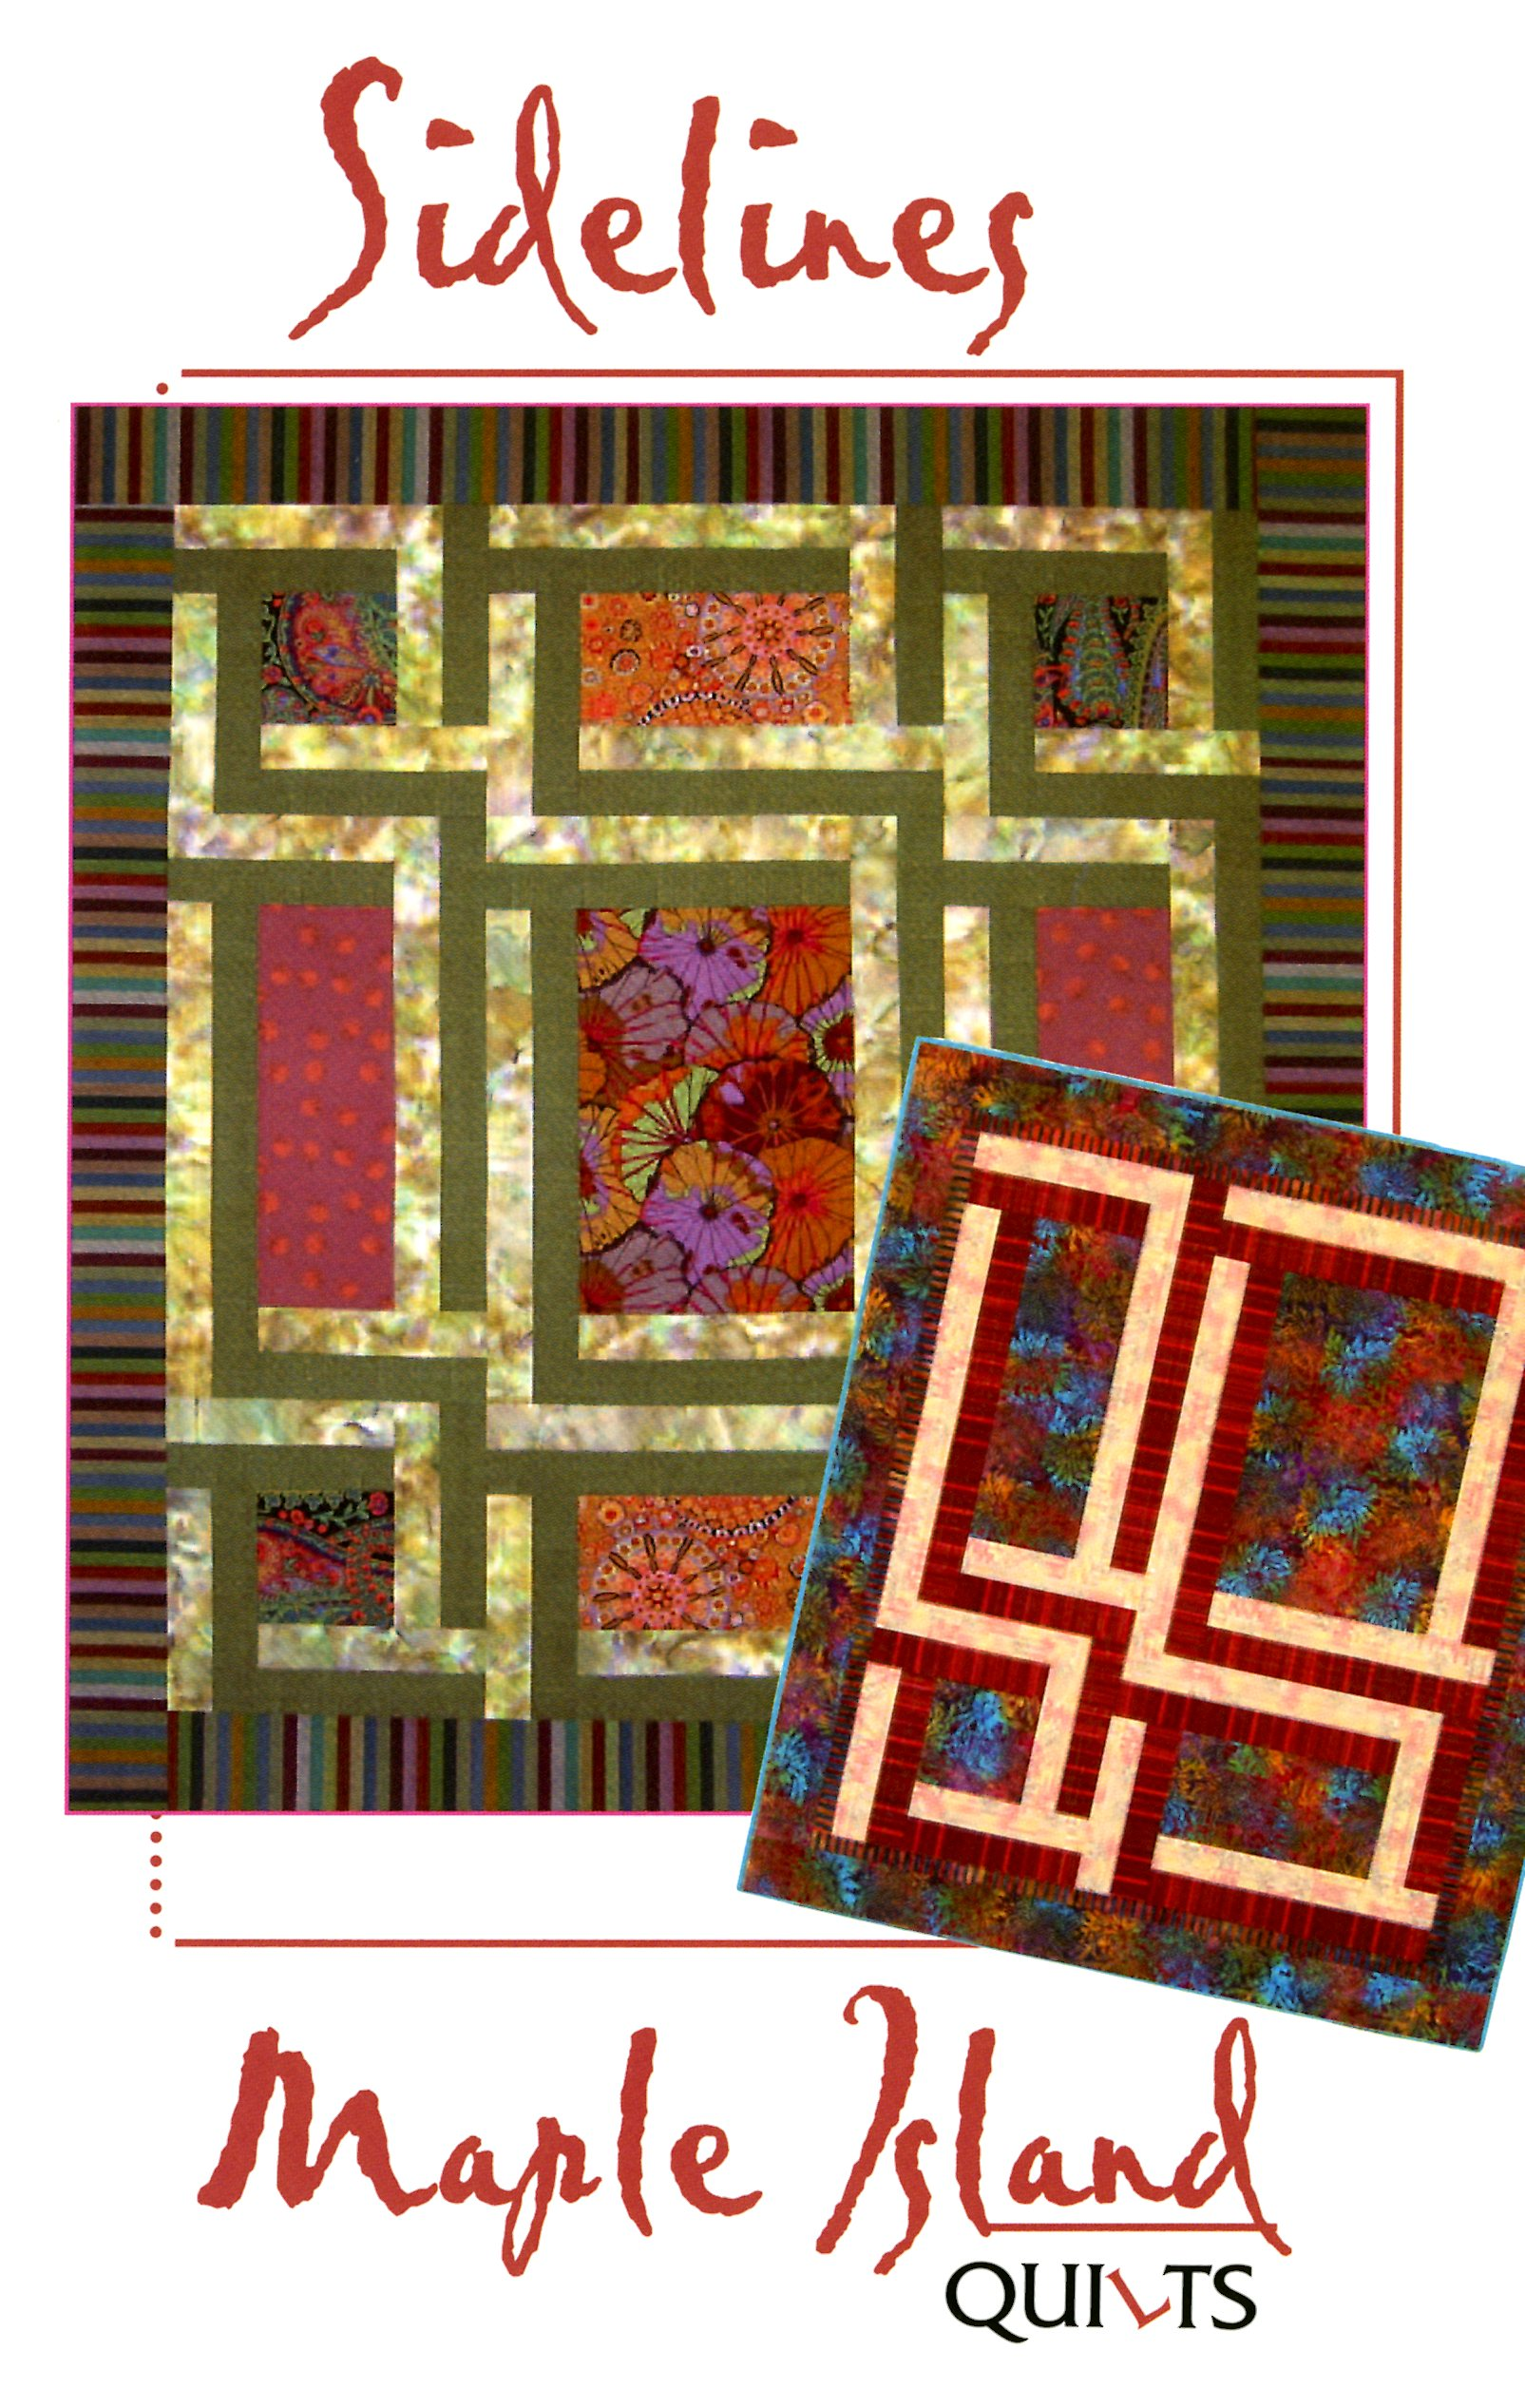 maple island quilts sidelines pattern miq154 799each